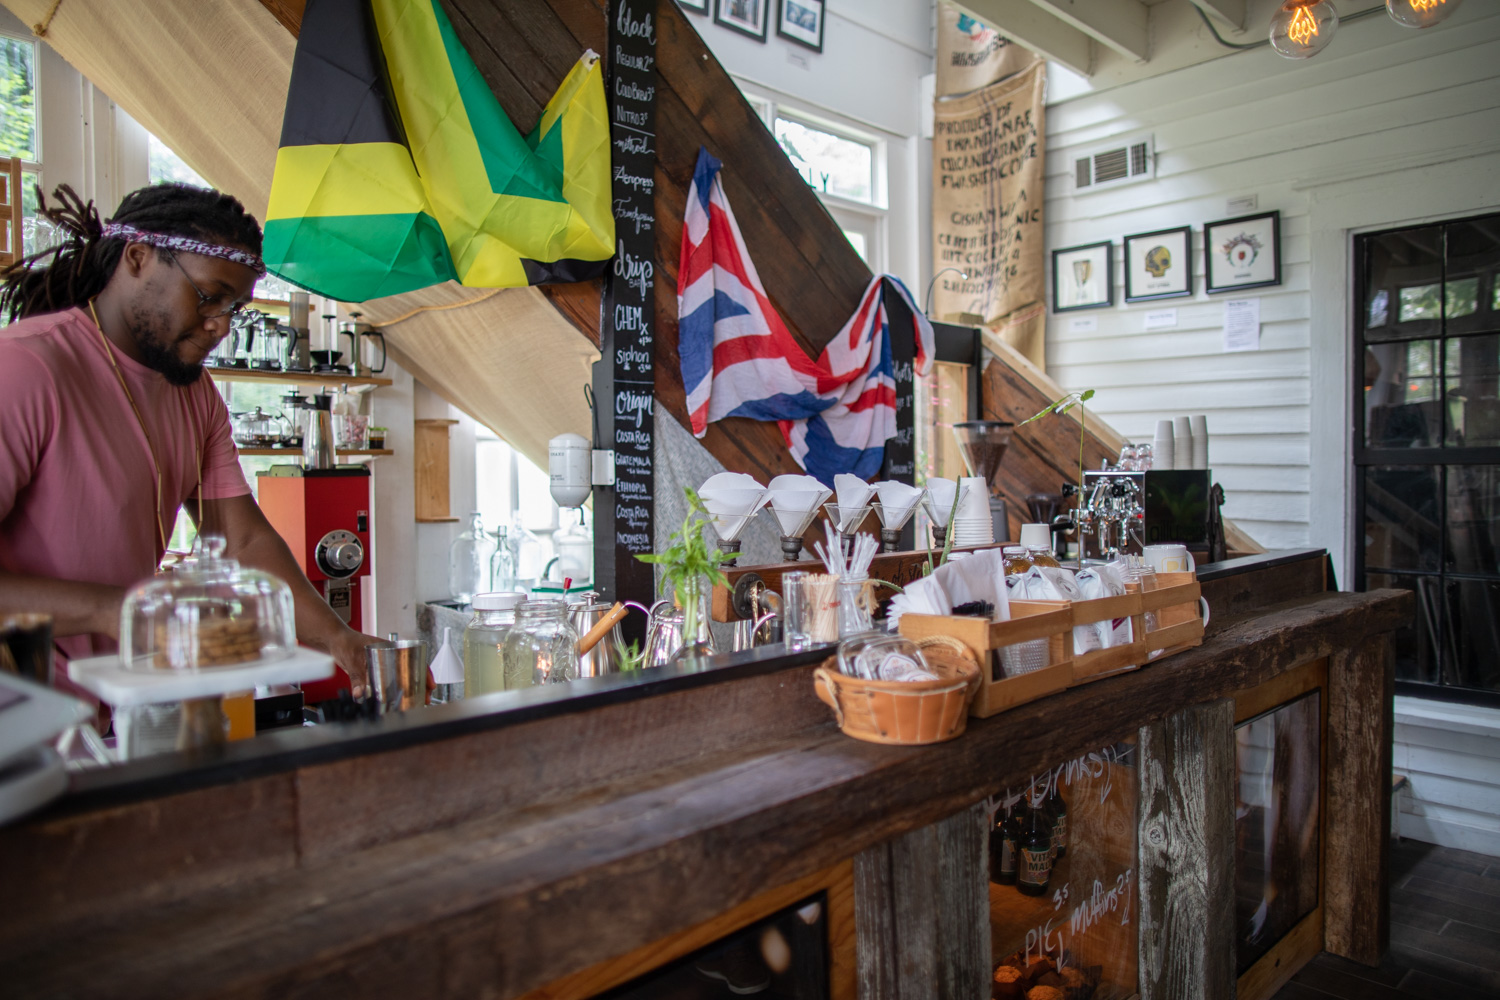 Daniel Brown, owner of Gilly Brew Bar, prepares my order. The Jamaican flag and the Union Jack are a reminder of Daniel's family/relatives who have called Jamaica and the U.K. home.